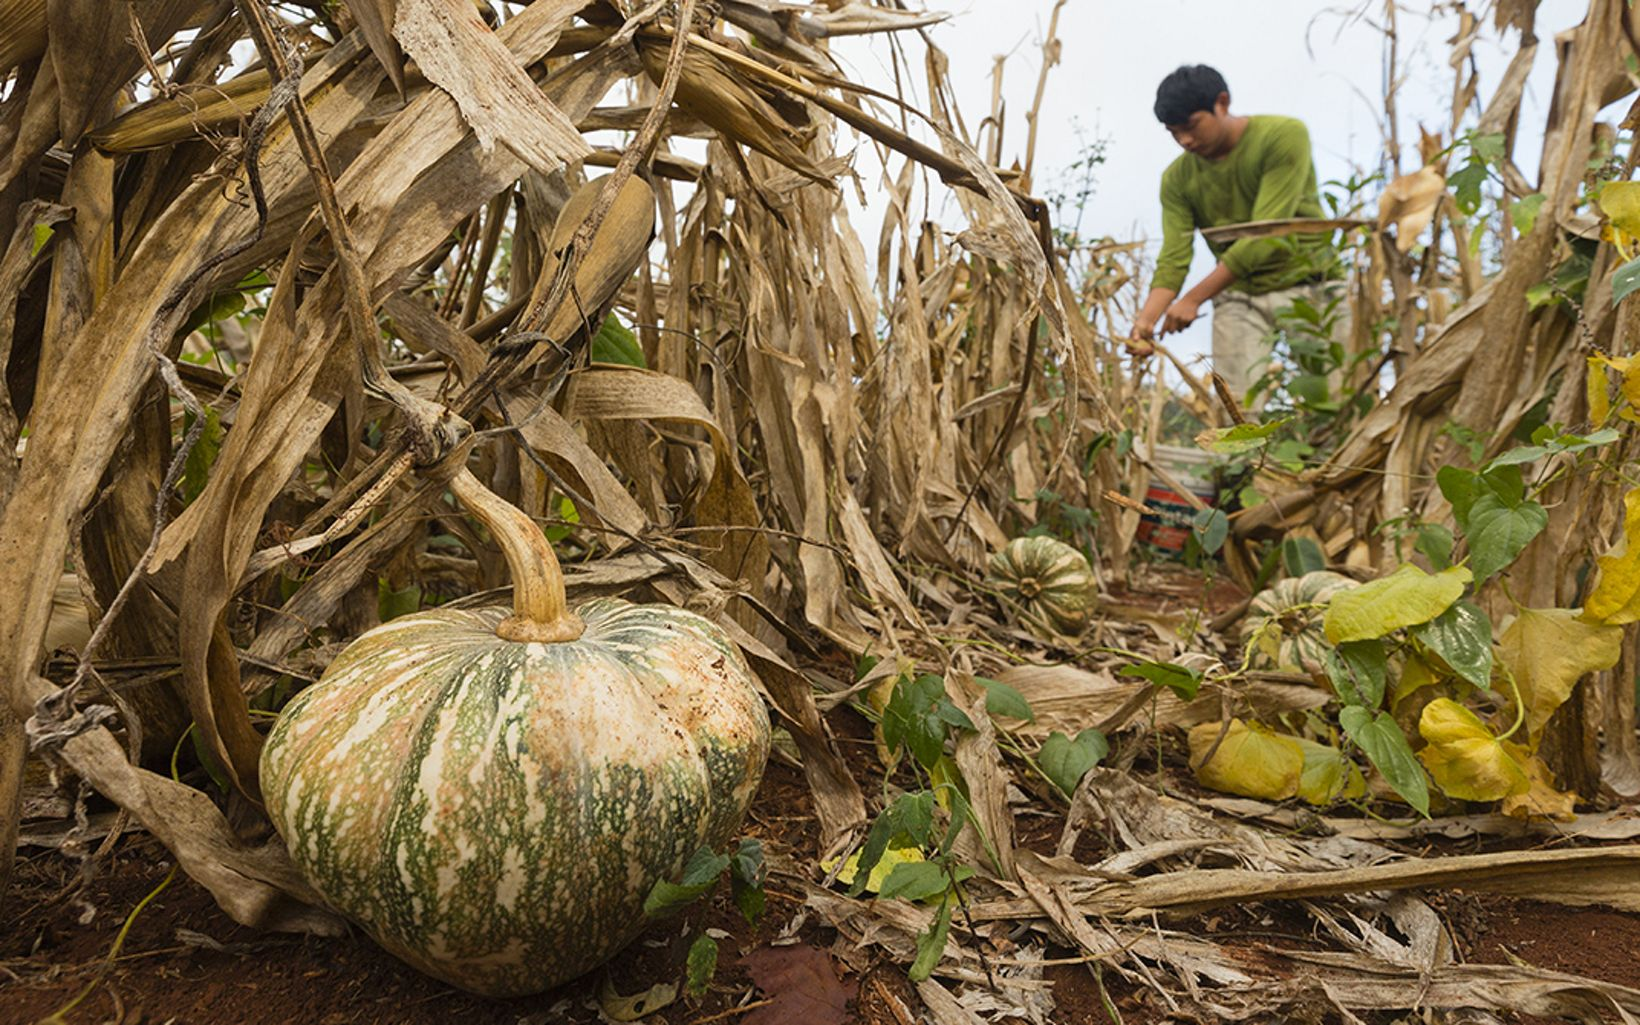 A farmer picks squash, beans and corn from his father'sfield in Mexico's Yucatan Peninsula.